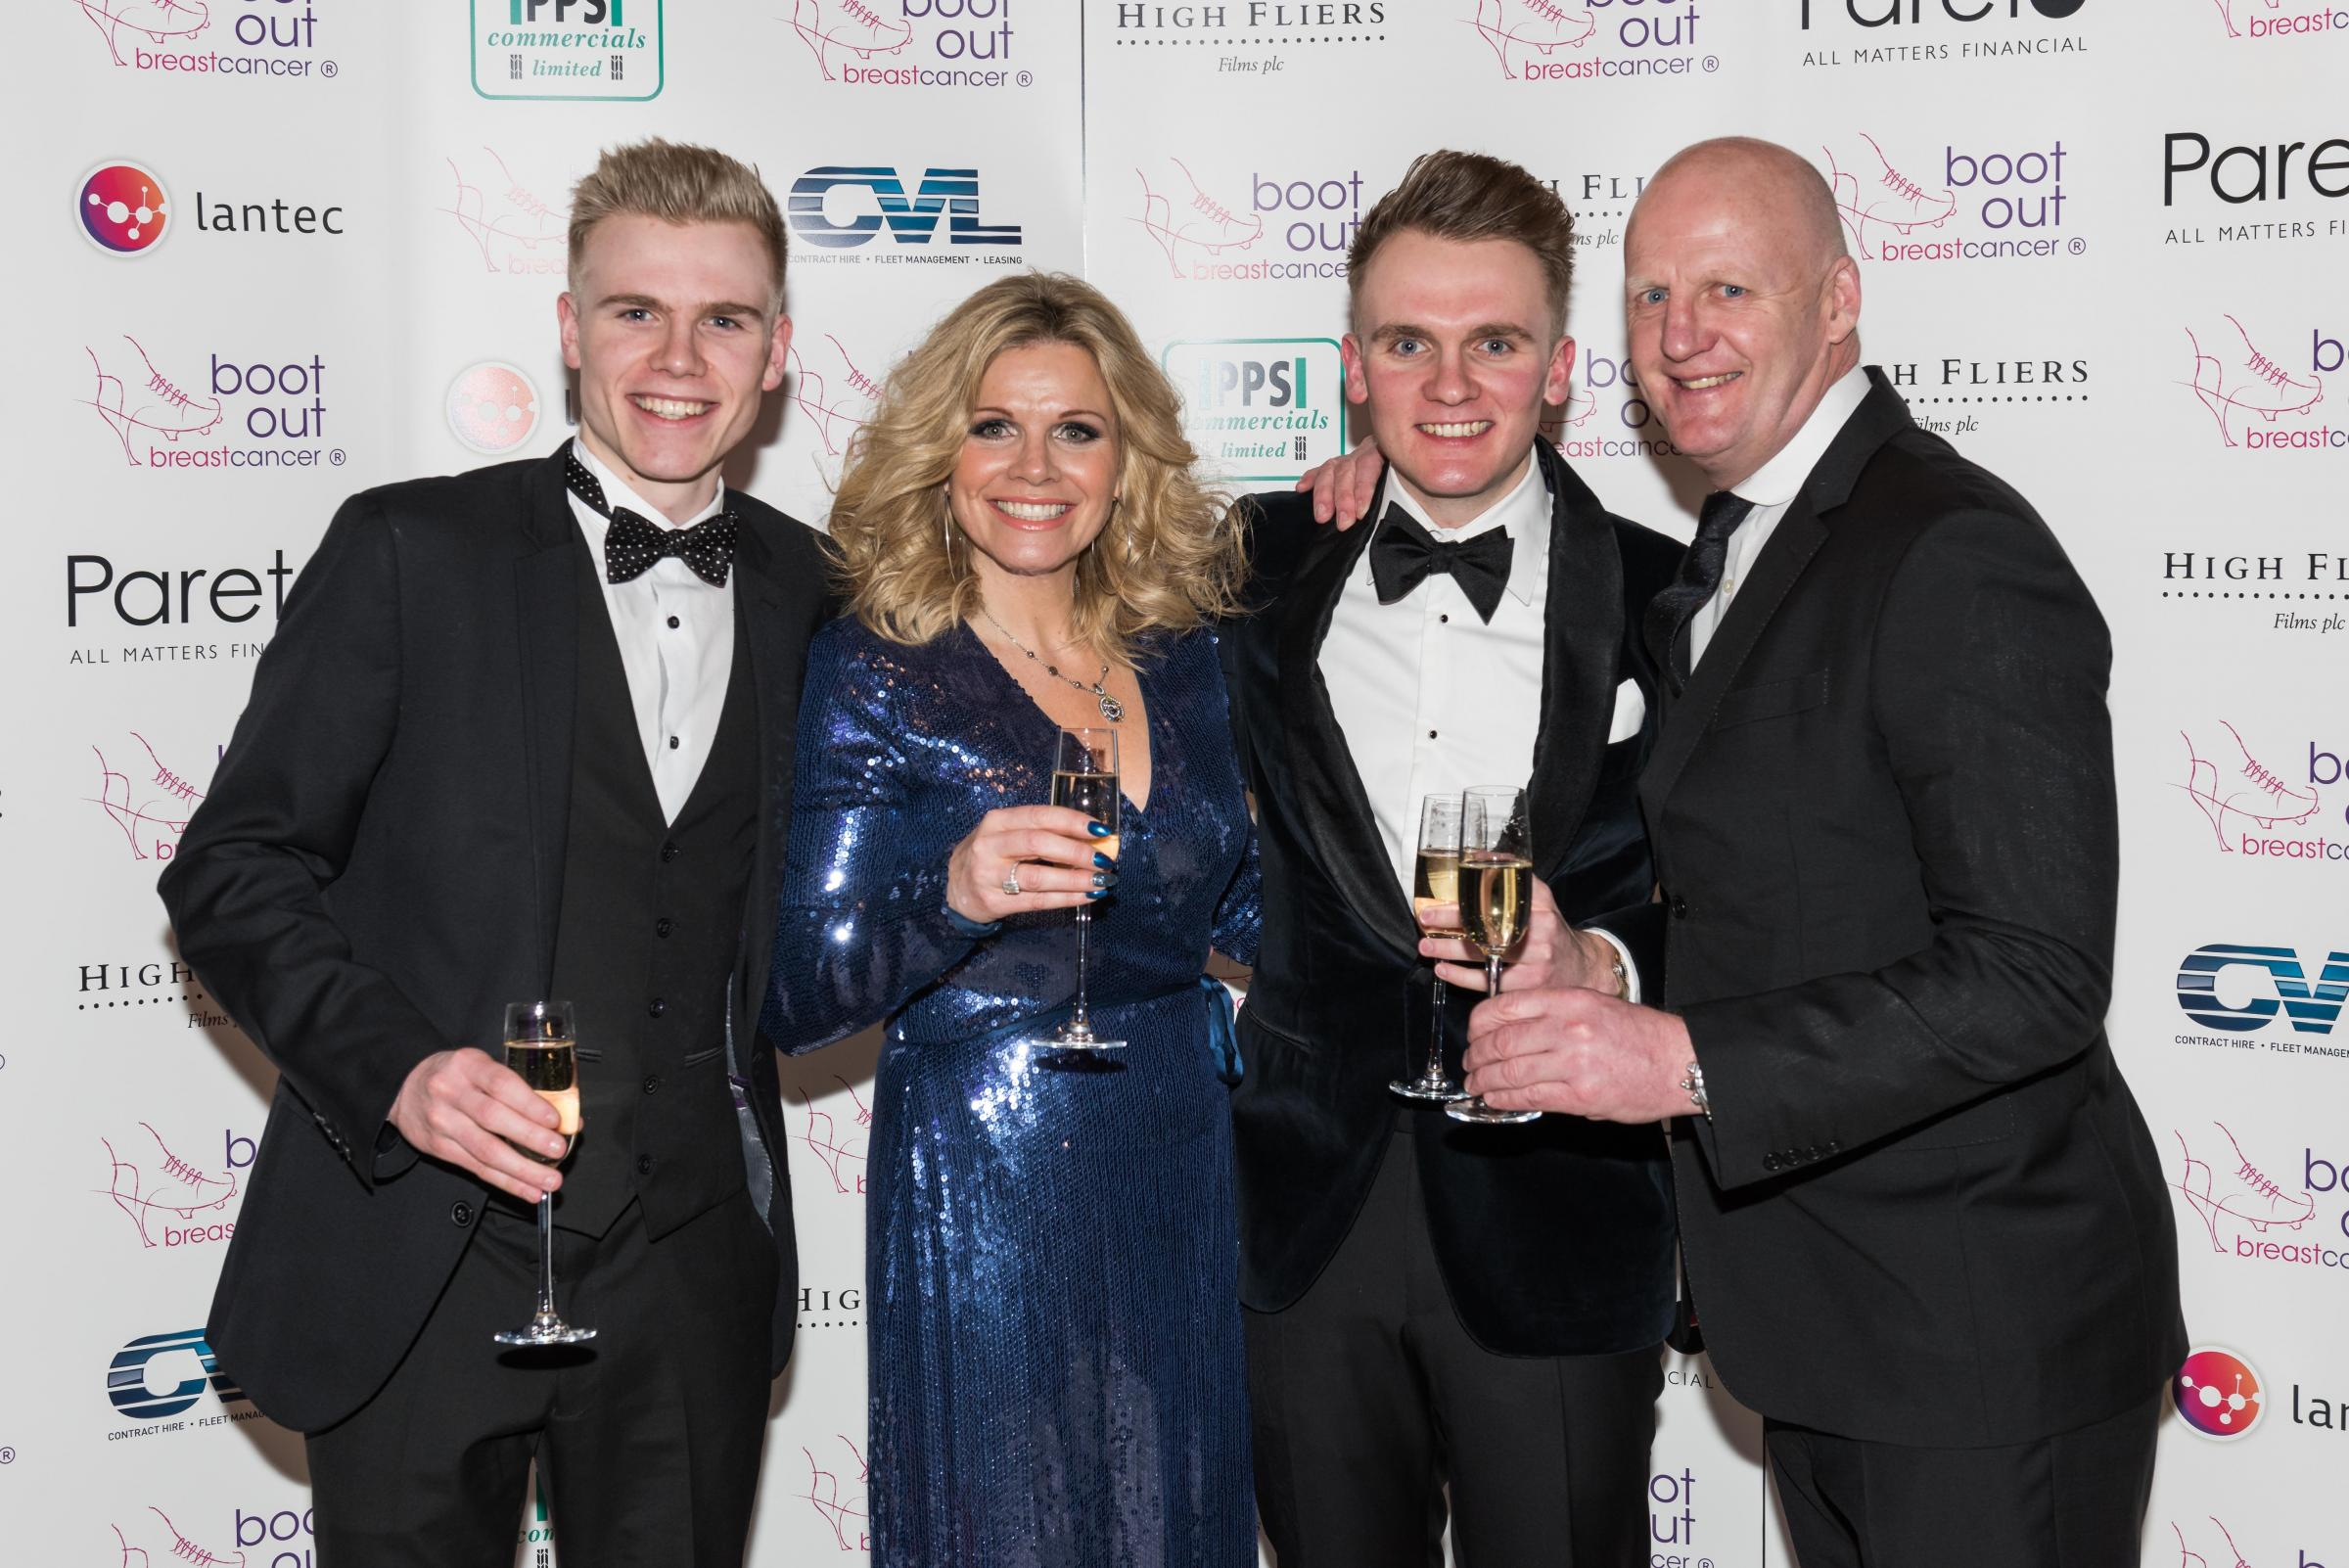 The Dowie family at a Boot Out Breast Cancer event, from left Will, Debbie, Ollie and Iain